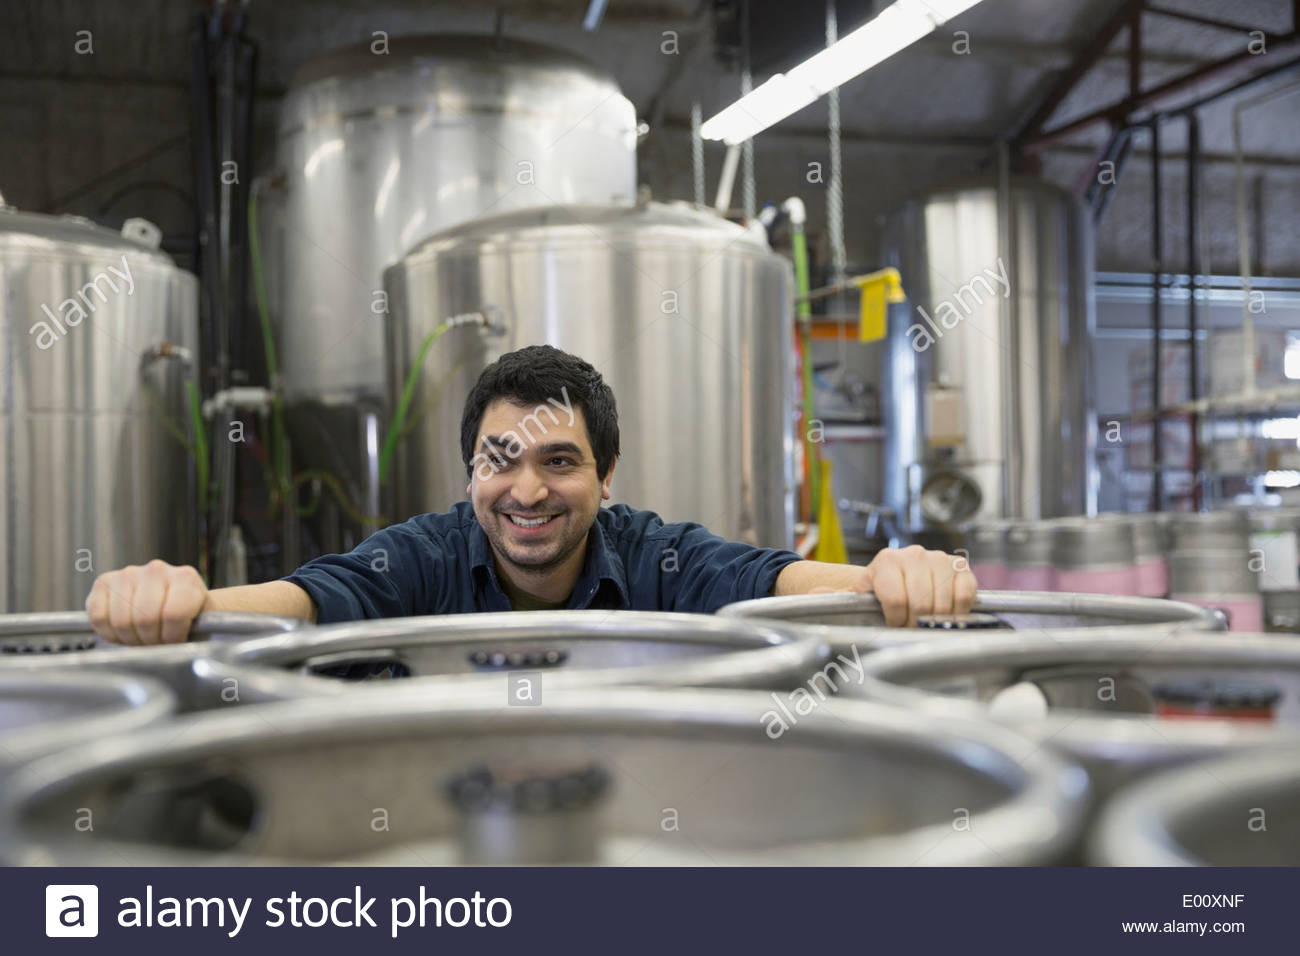 Brewery worker leaning on kegs - Stock Image